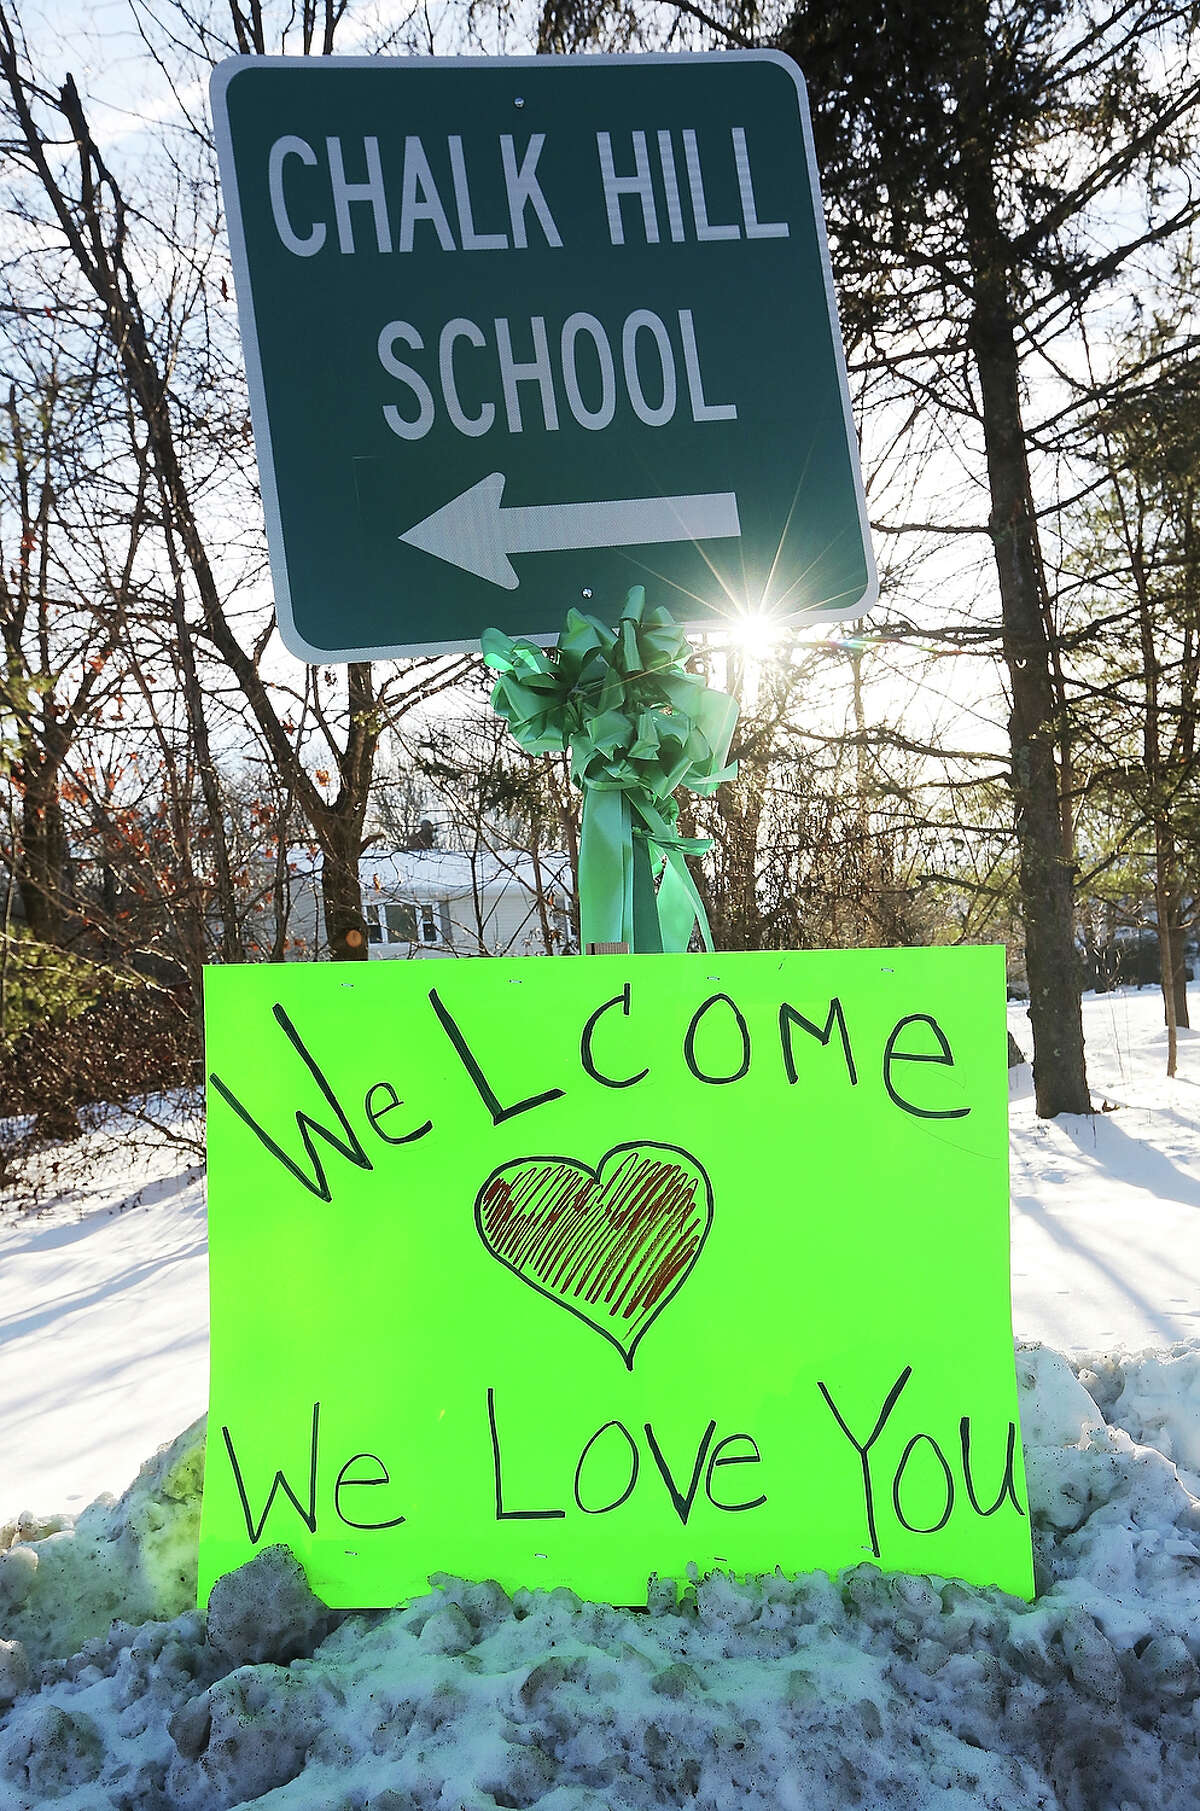 A sign reads 'Welcome We Love You' beneath a sign pointing to the location of Chalk Hill School, which has been refurbished and renamed Sandy Hook Elementary School on January 3, 2013 in Monroe, Connecticut. Sandy Hook students started their first day of classes in the new building following the mass shooting at the old school in Newtown that left 20 students and six faculty members dead.